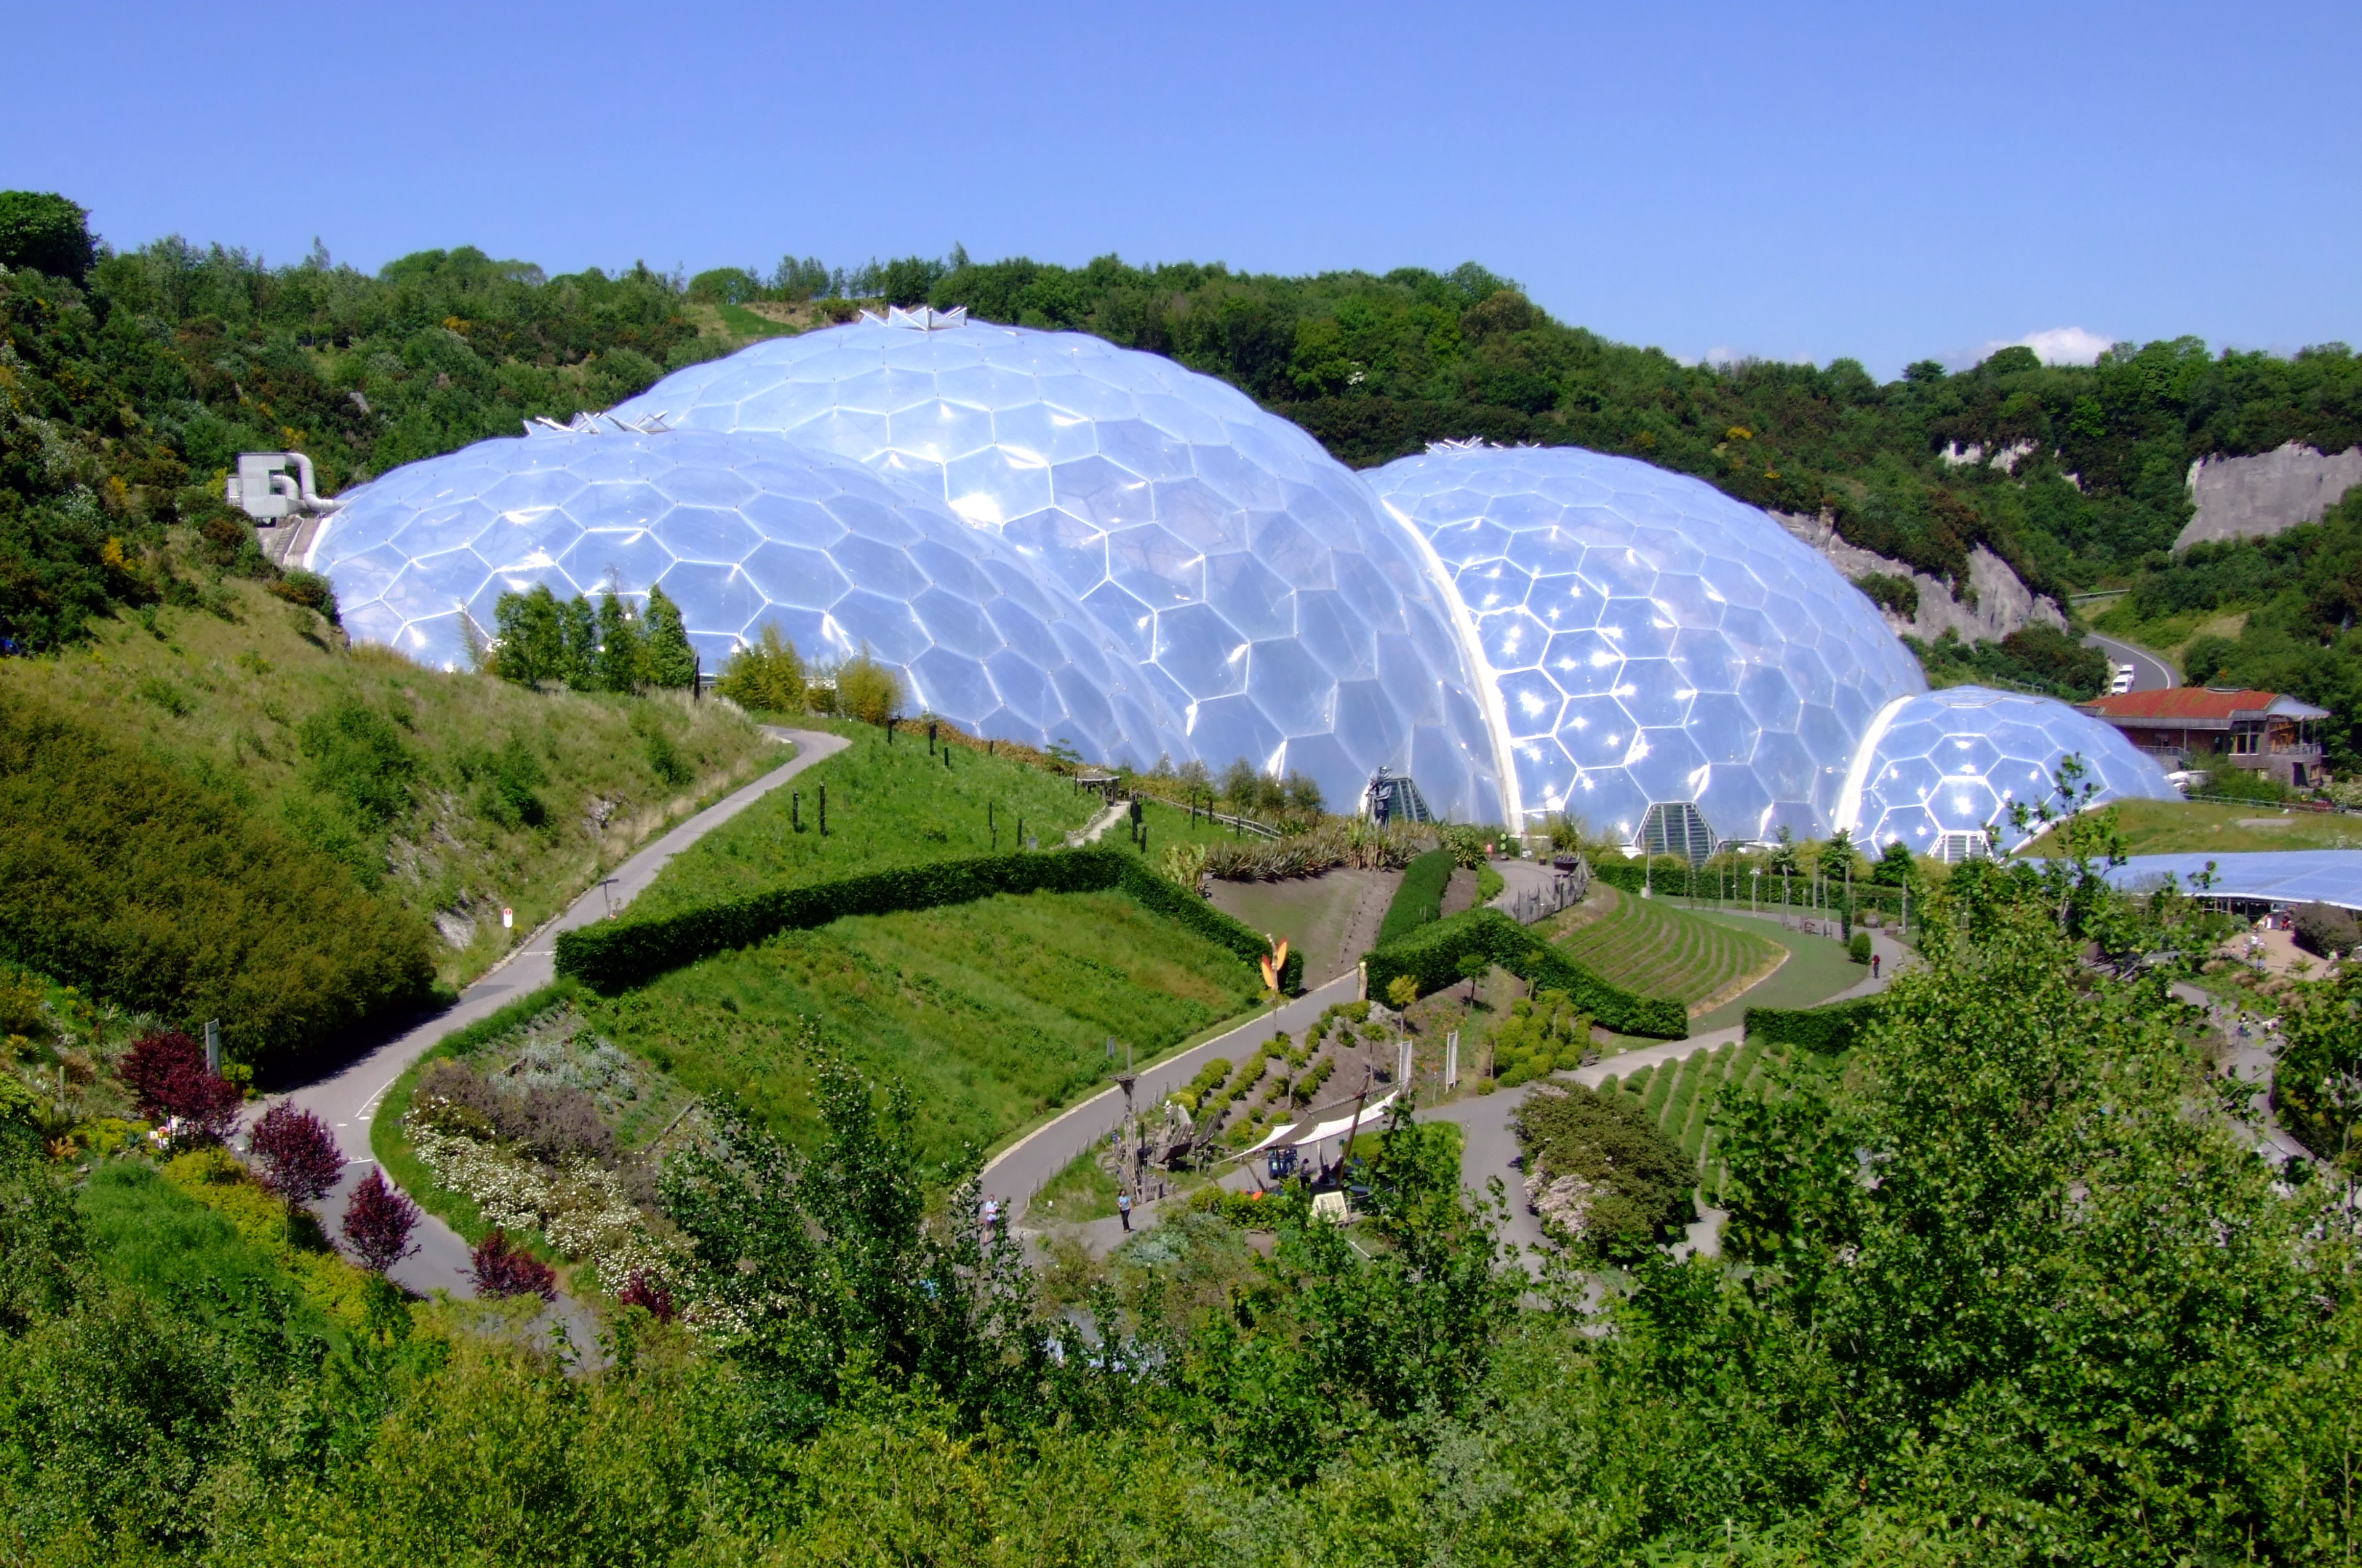 Eden_Project,_Cornwall,_England-29May2009